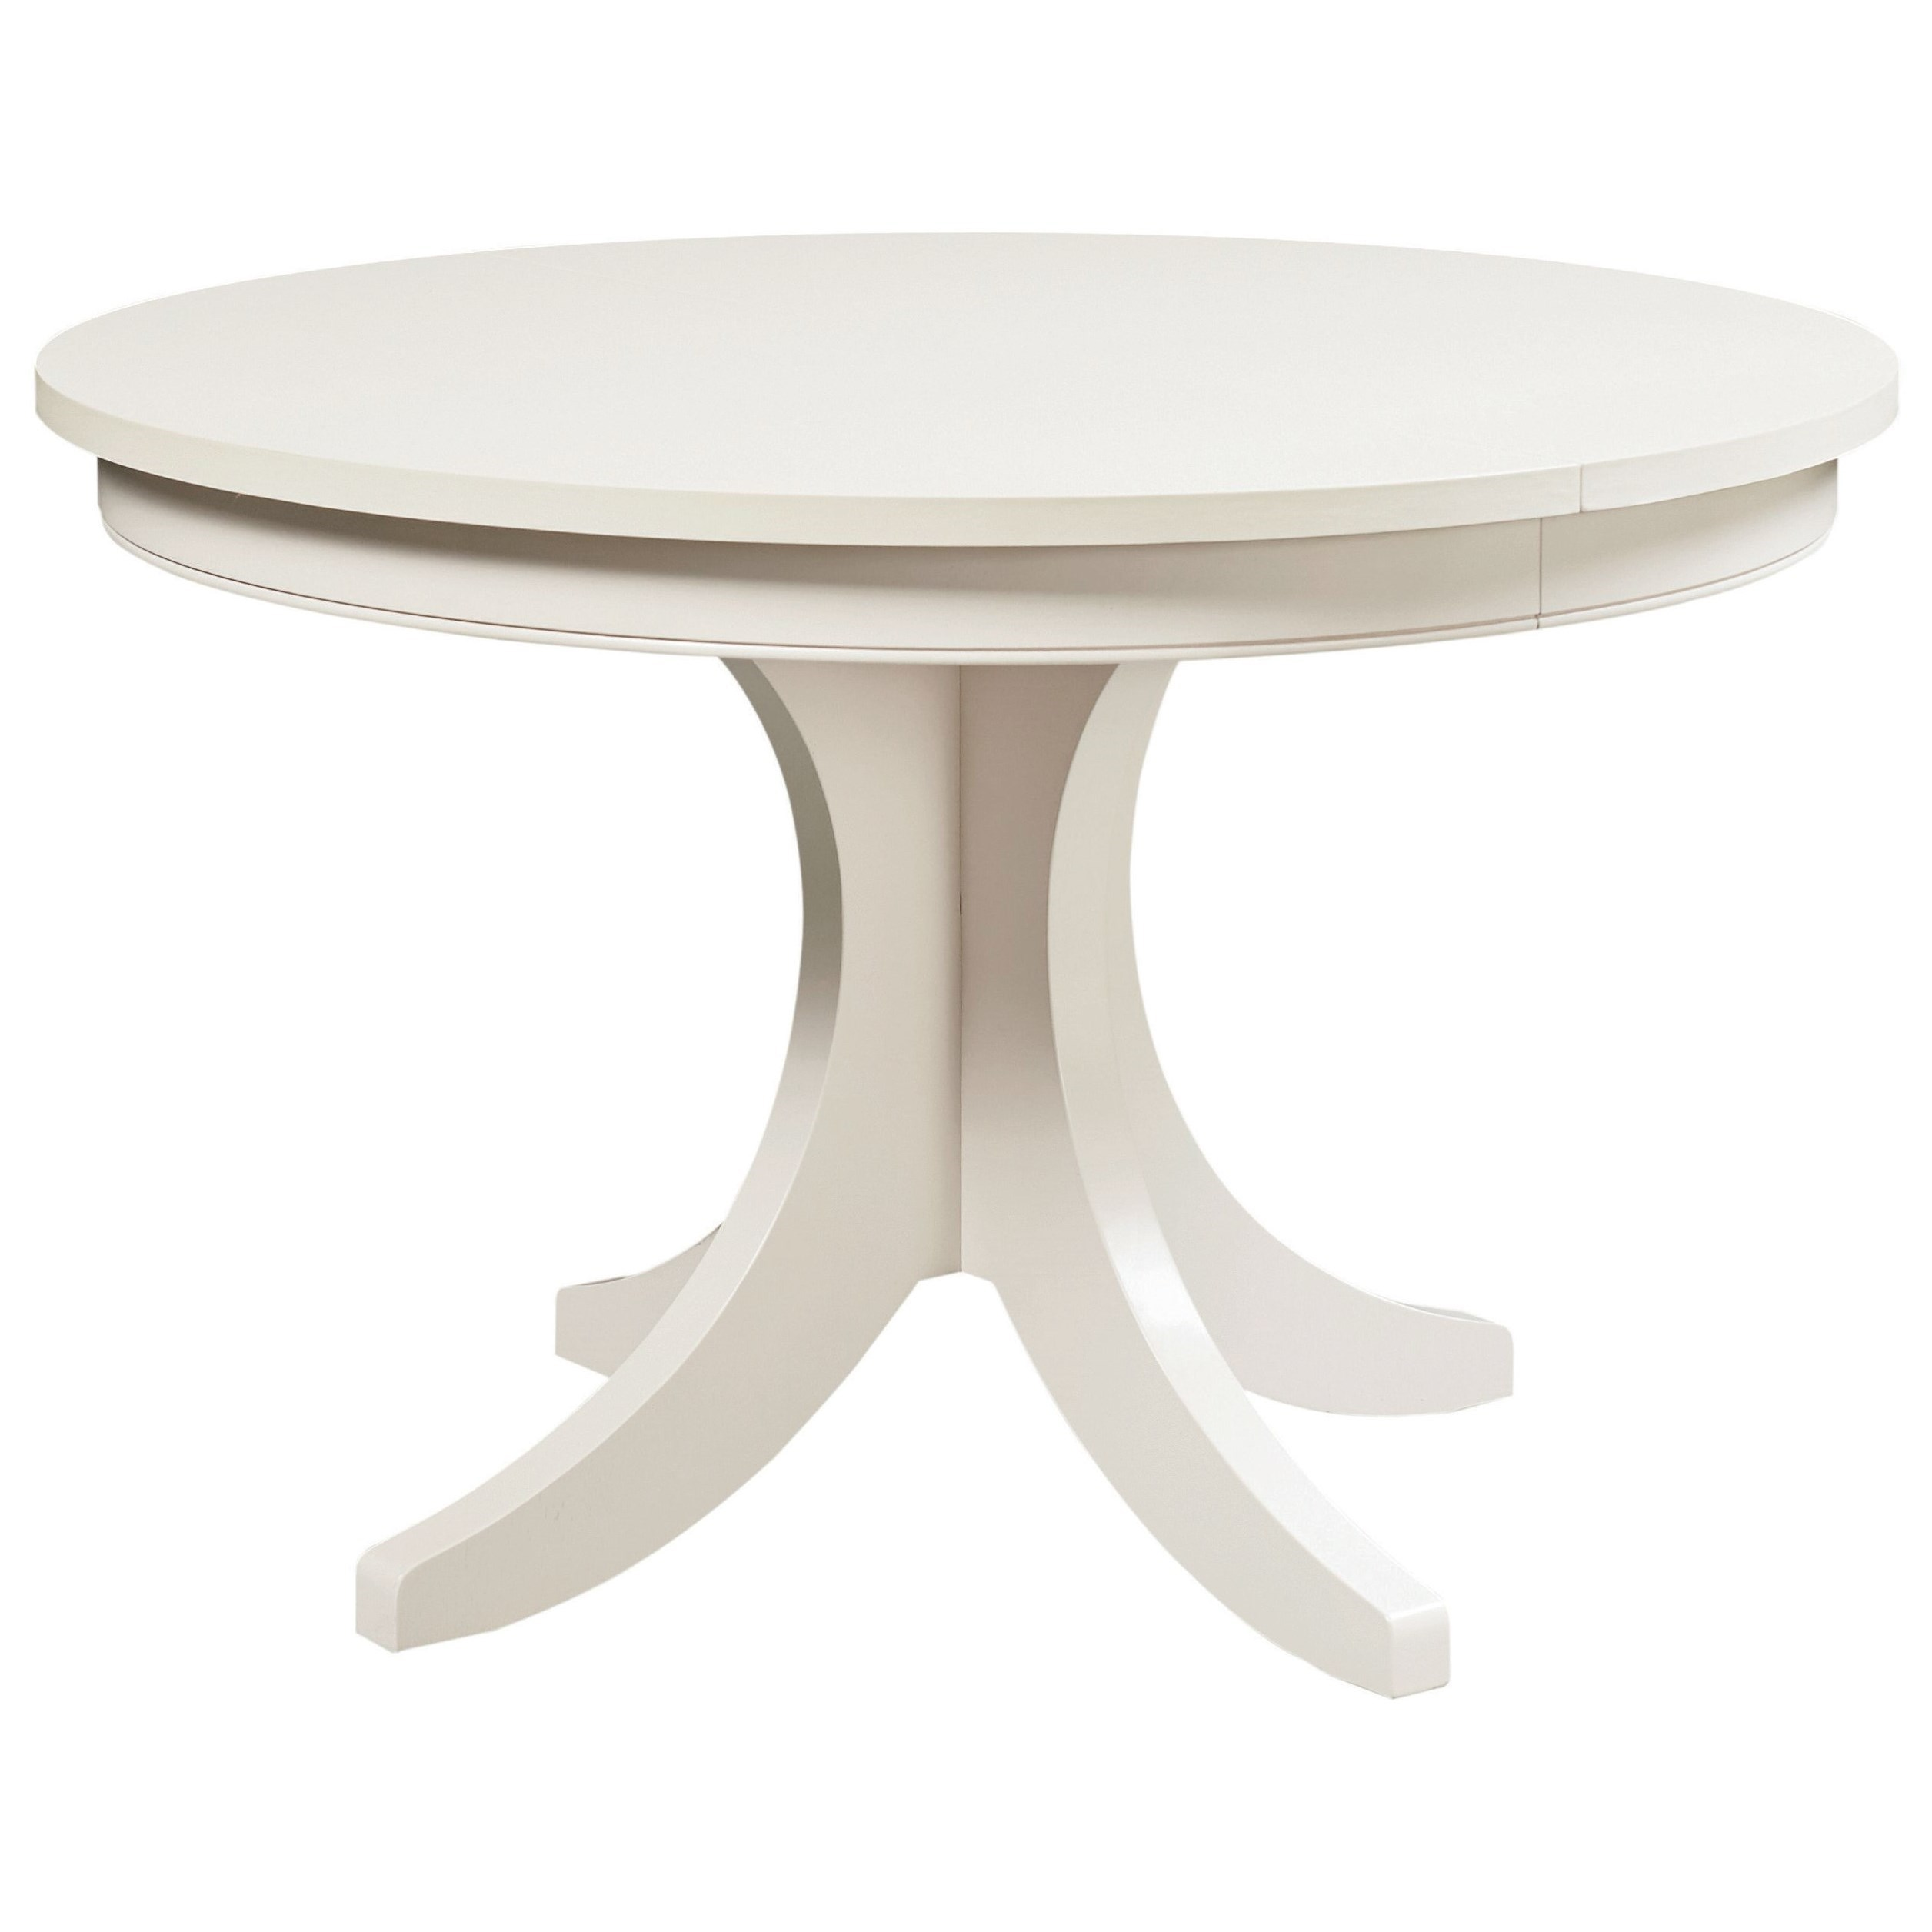 Custom Dining Customizable Round Pedestal Table by Bassett at Wilcox Furniture